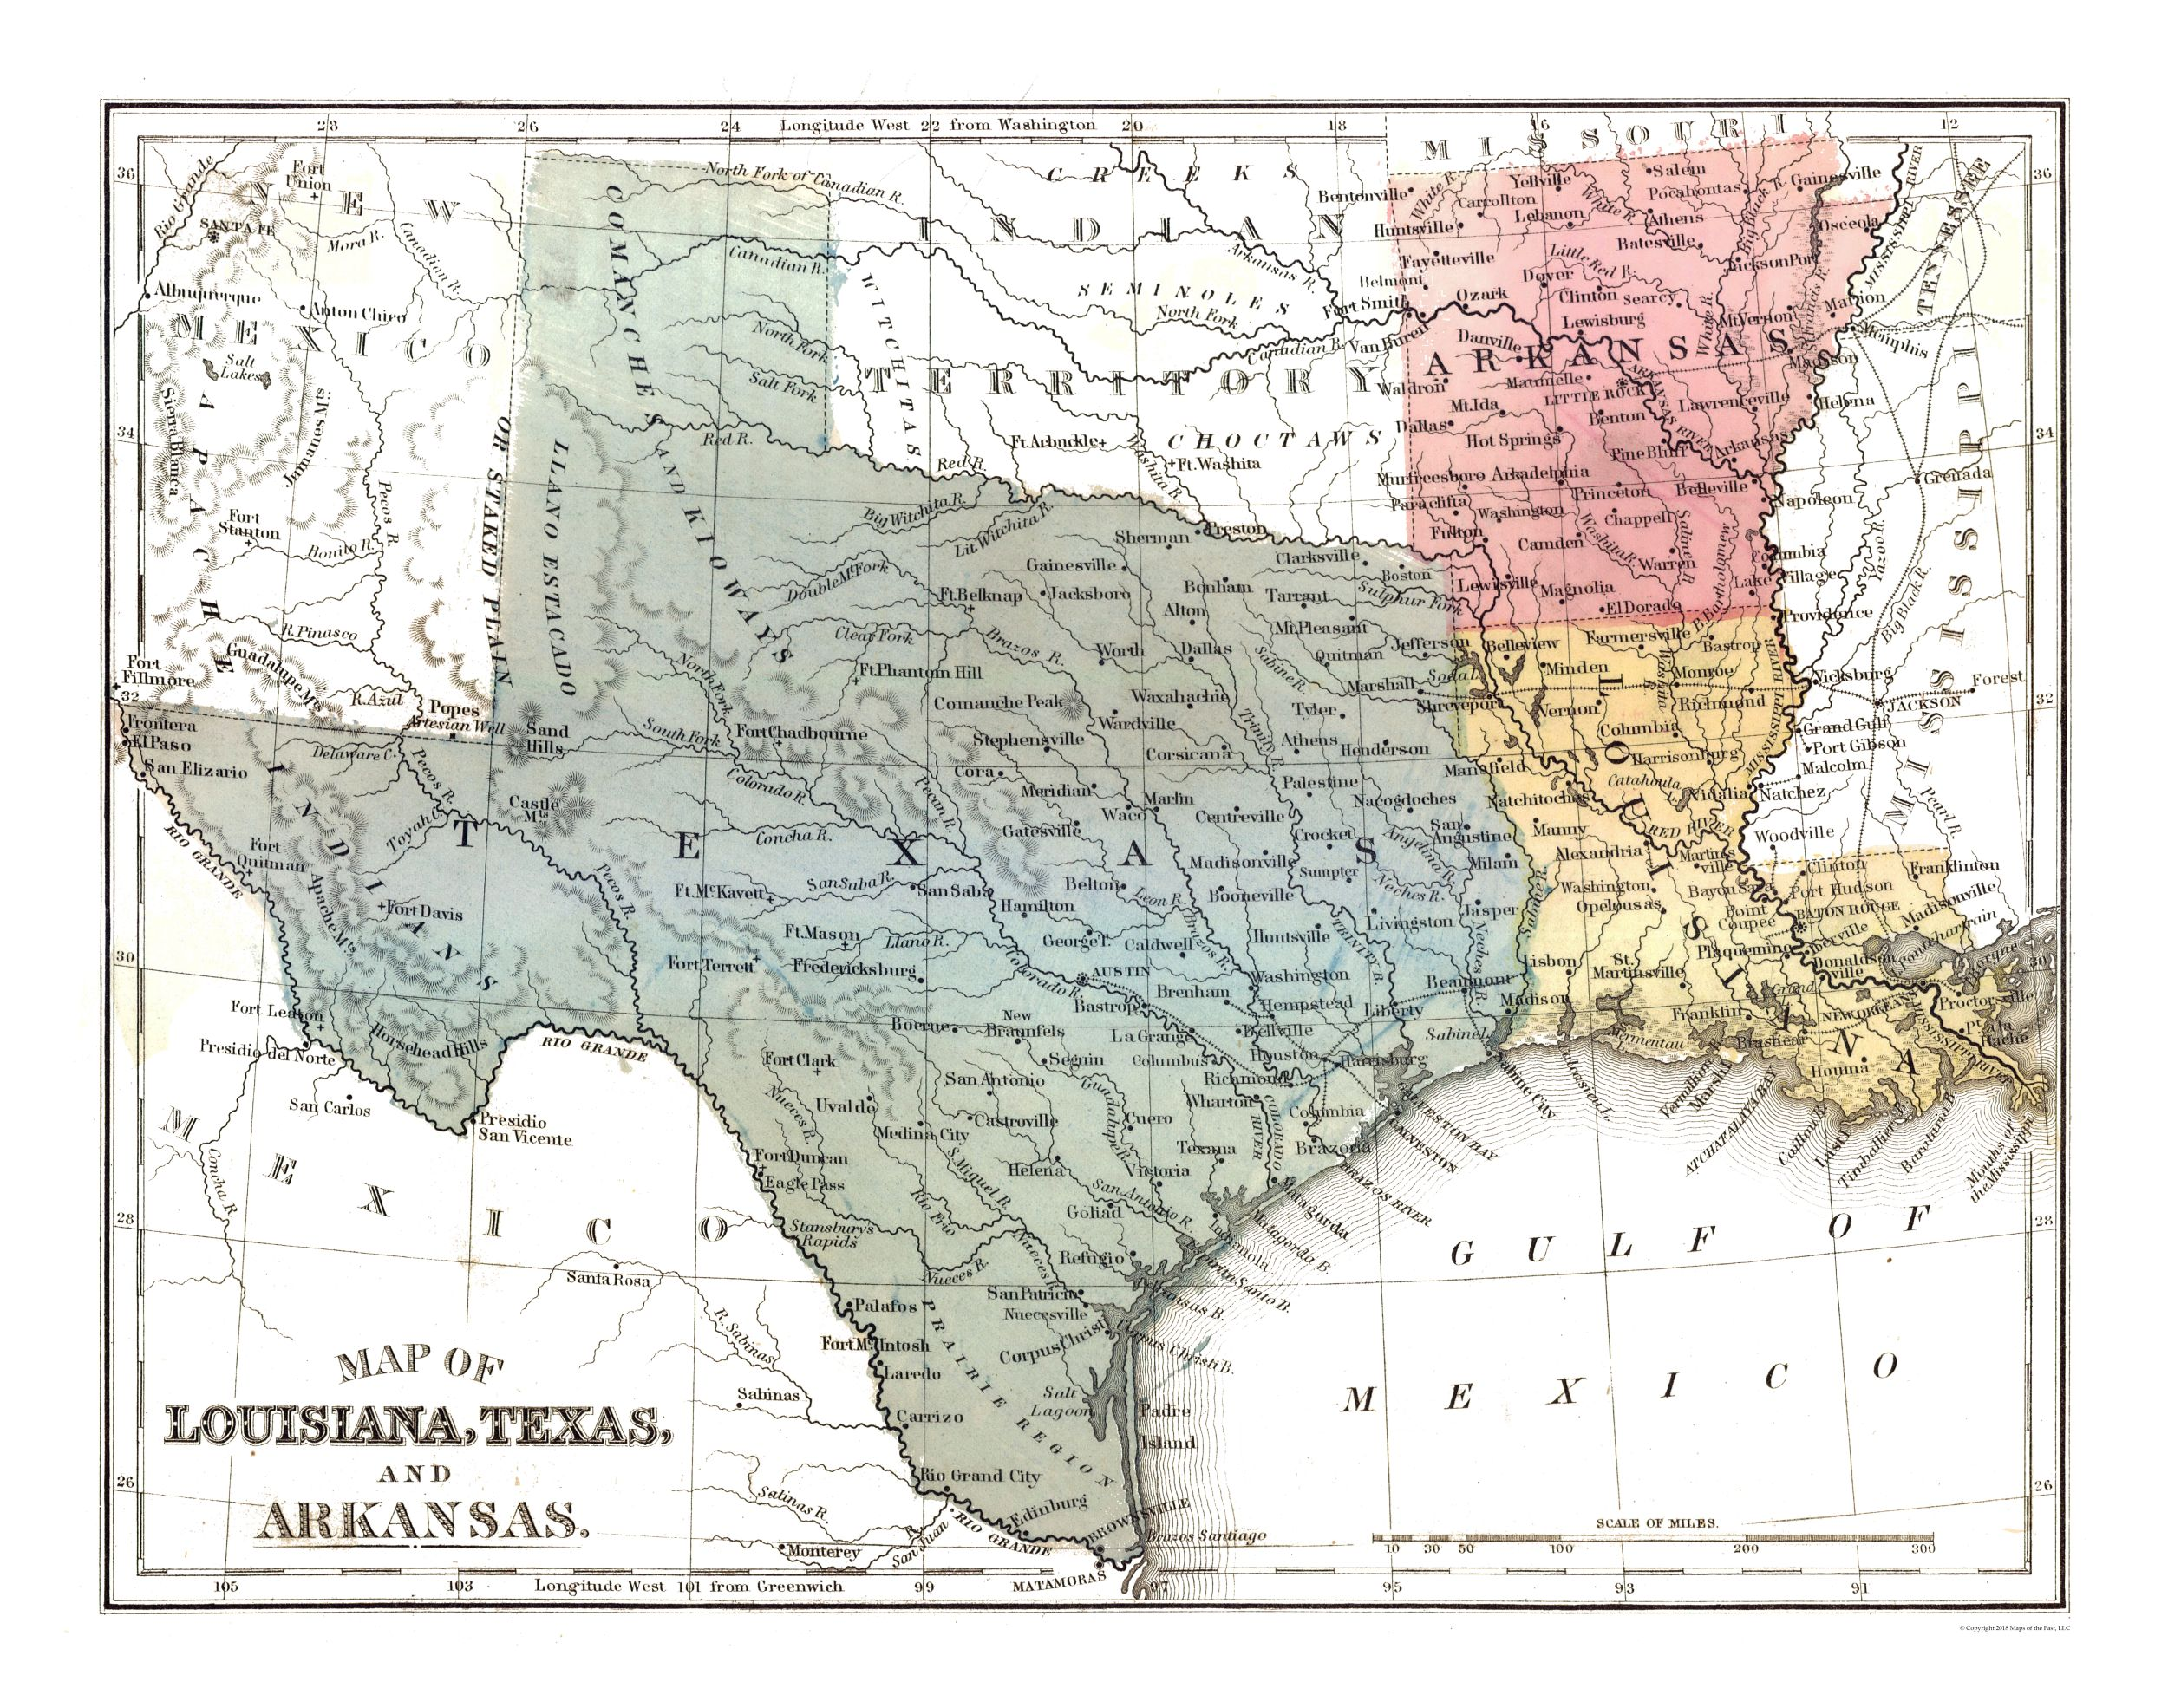 Louisiana Texas Map Louisiana, Texas, Arkansas   Mitchell 1869   29.19 x 23   Walmart